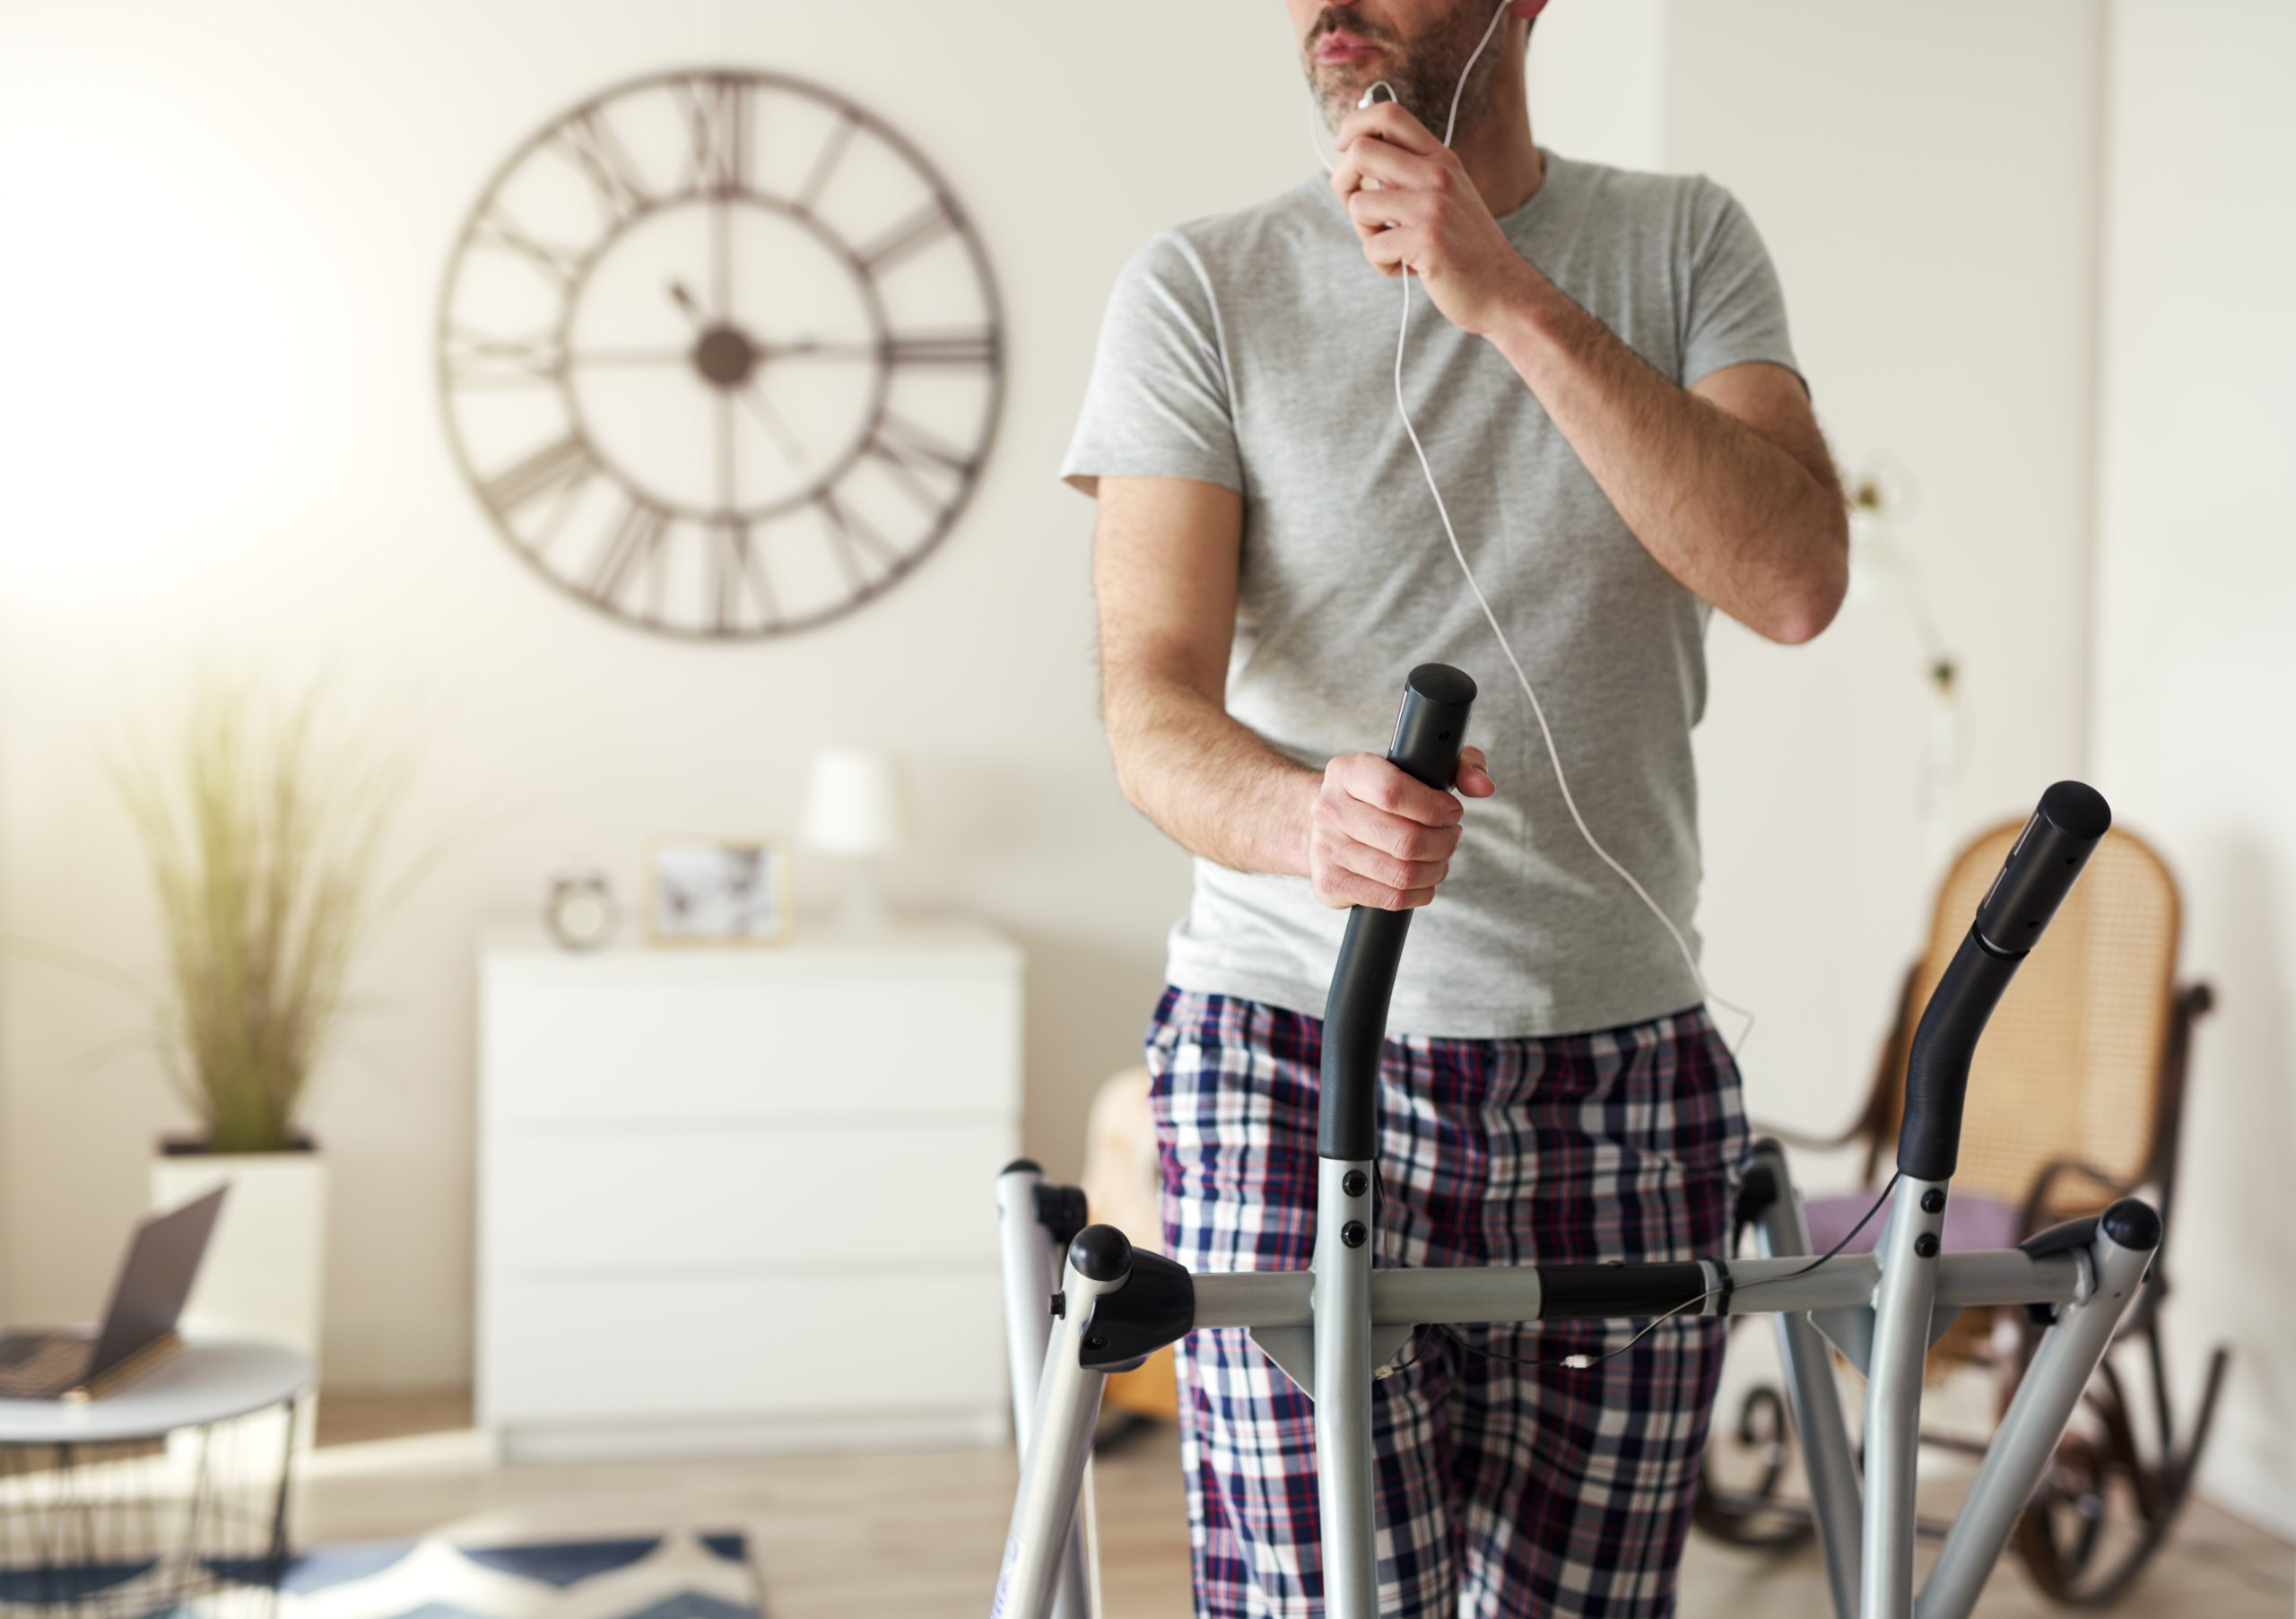 can home workout be as effective as a gym?